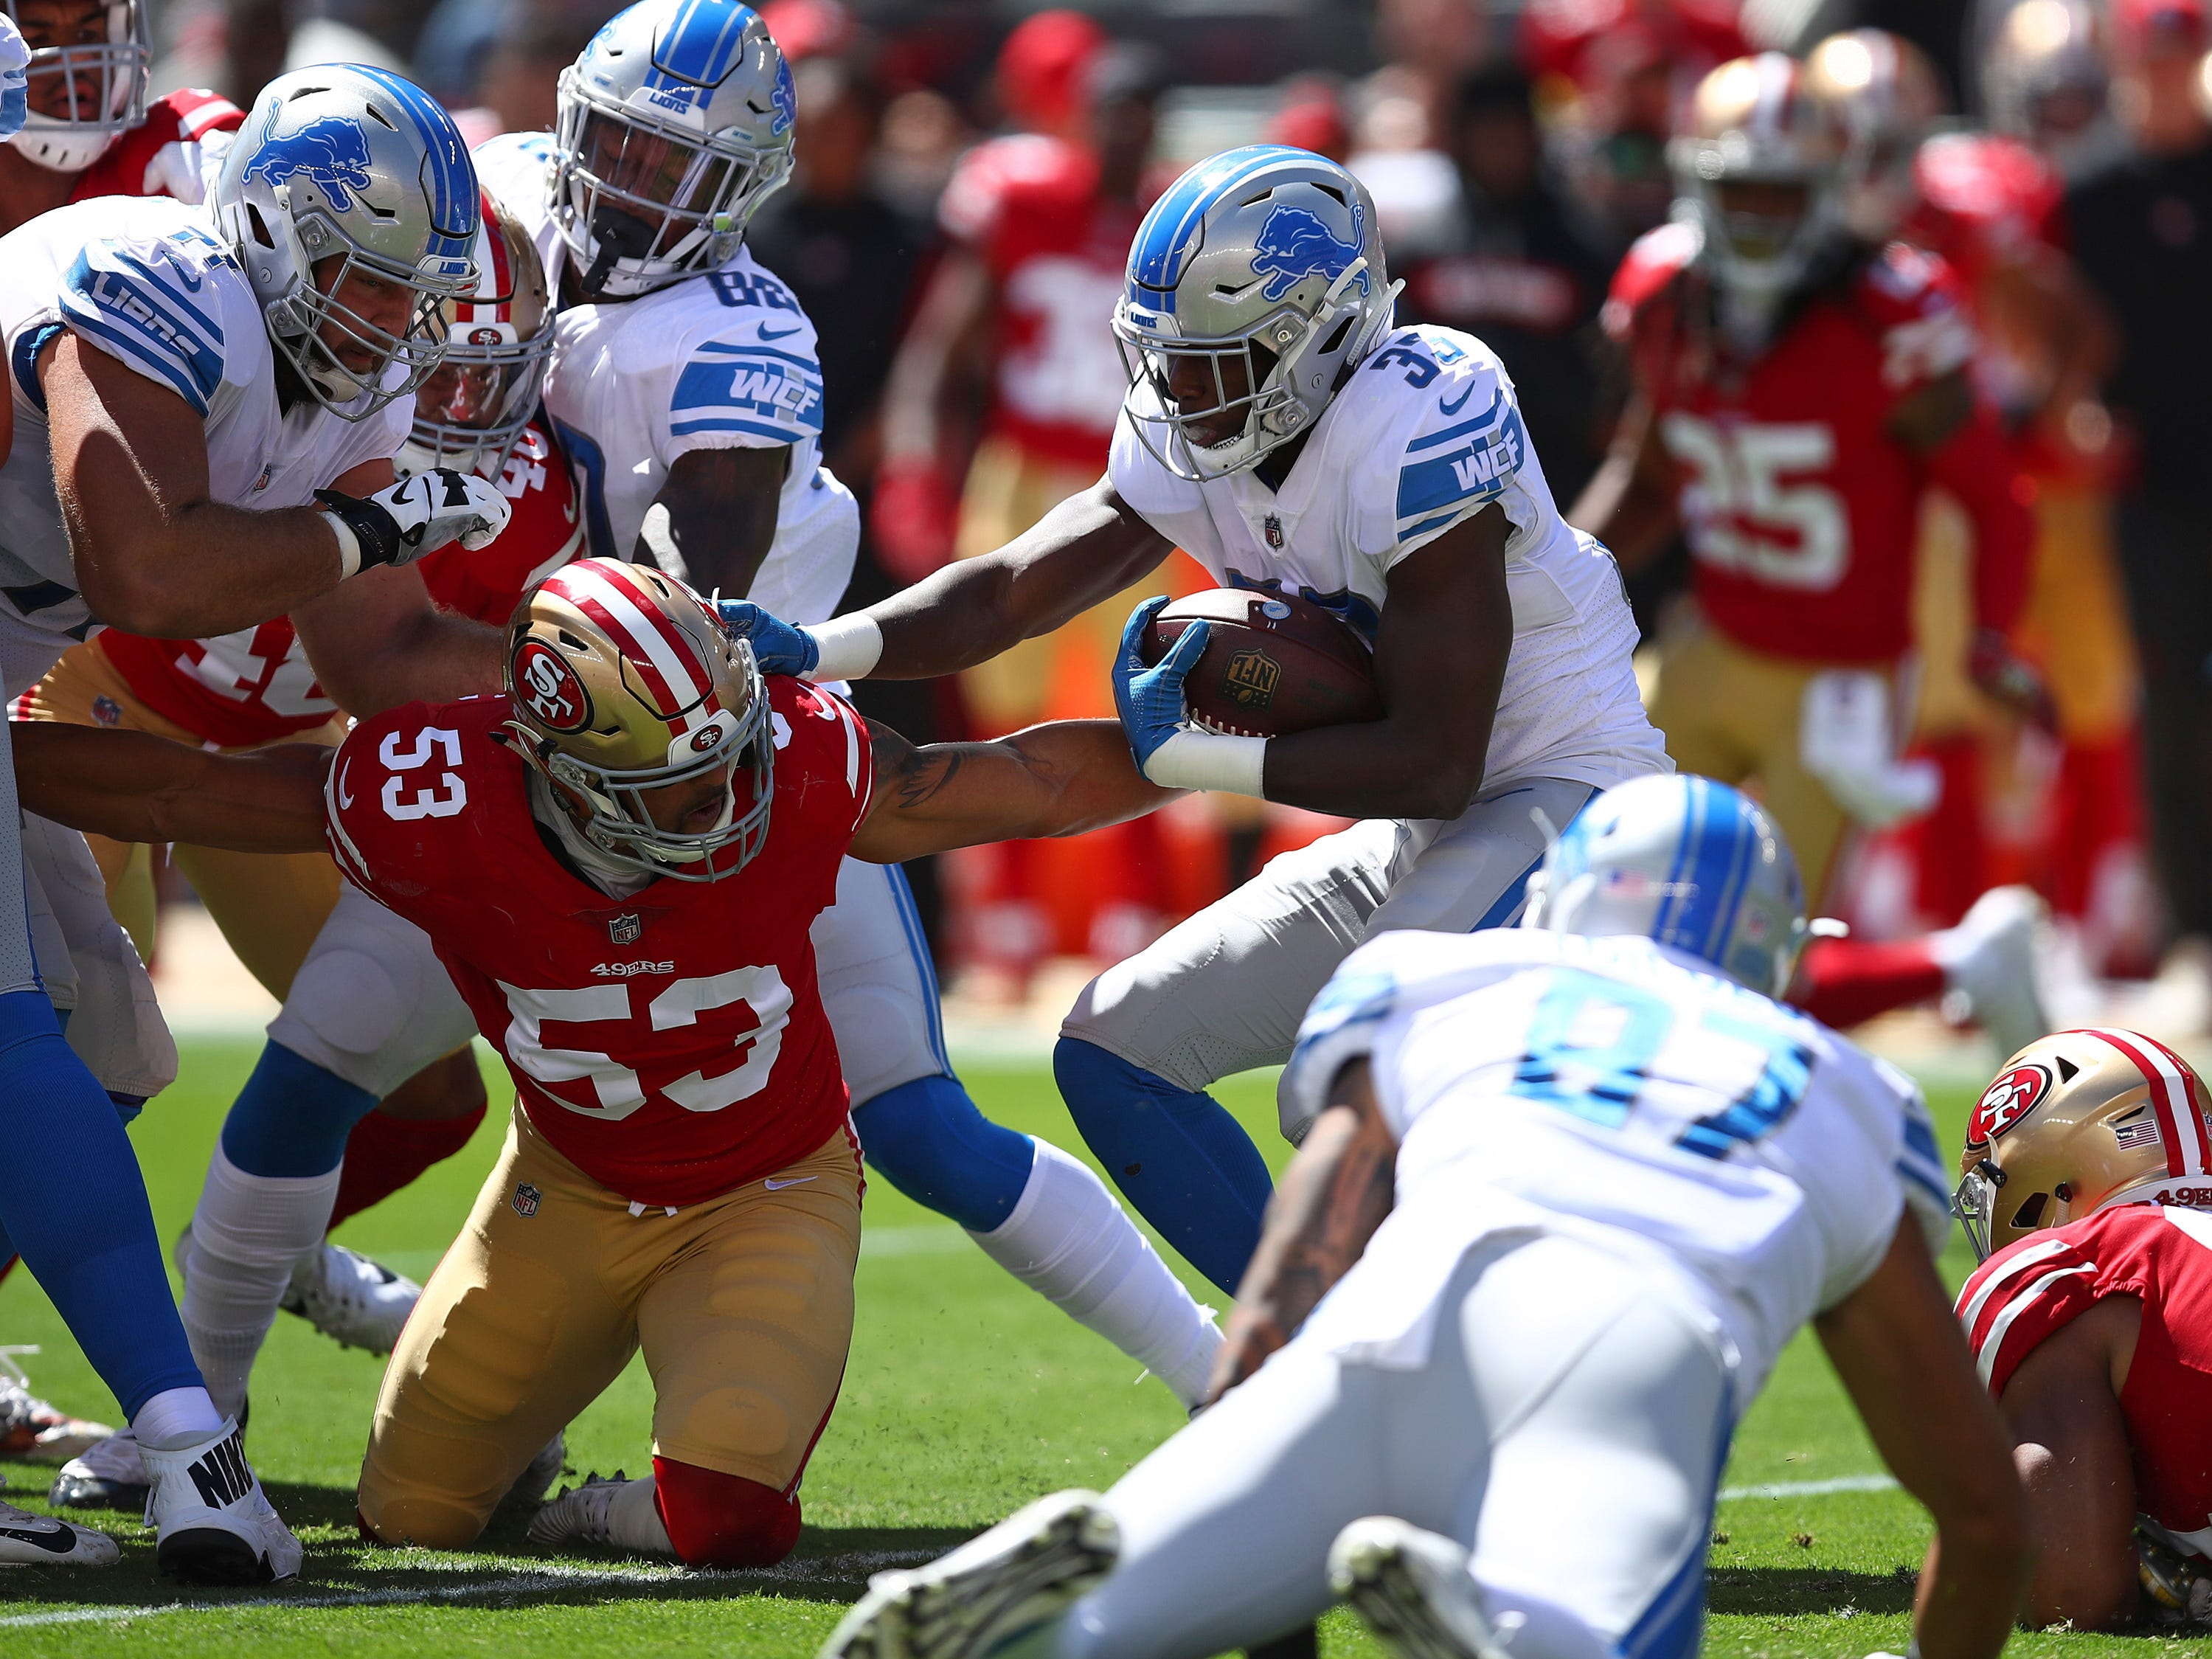 Detroit Lions running back Kerryon Johnson carries the ball as San Francisco 49ers outside linebacker Mark Nzeocha (53) looks on during the first half.